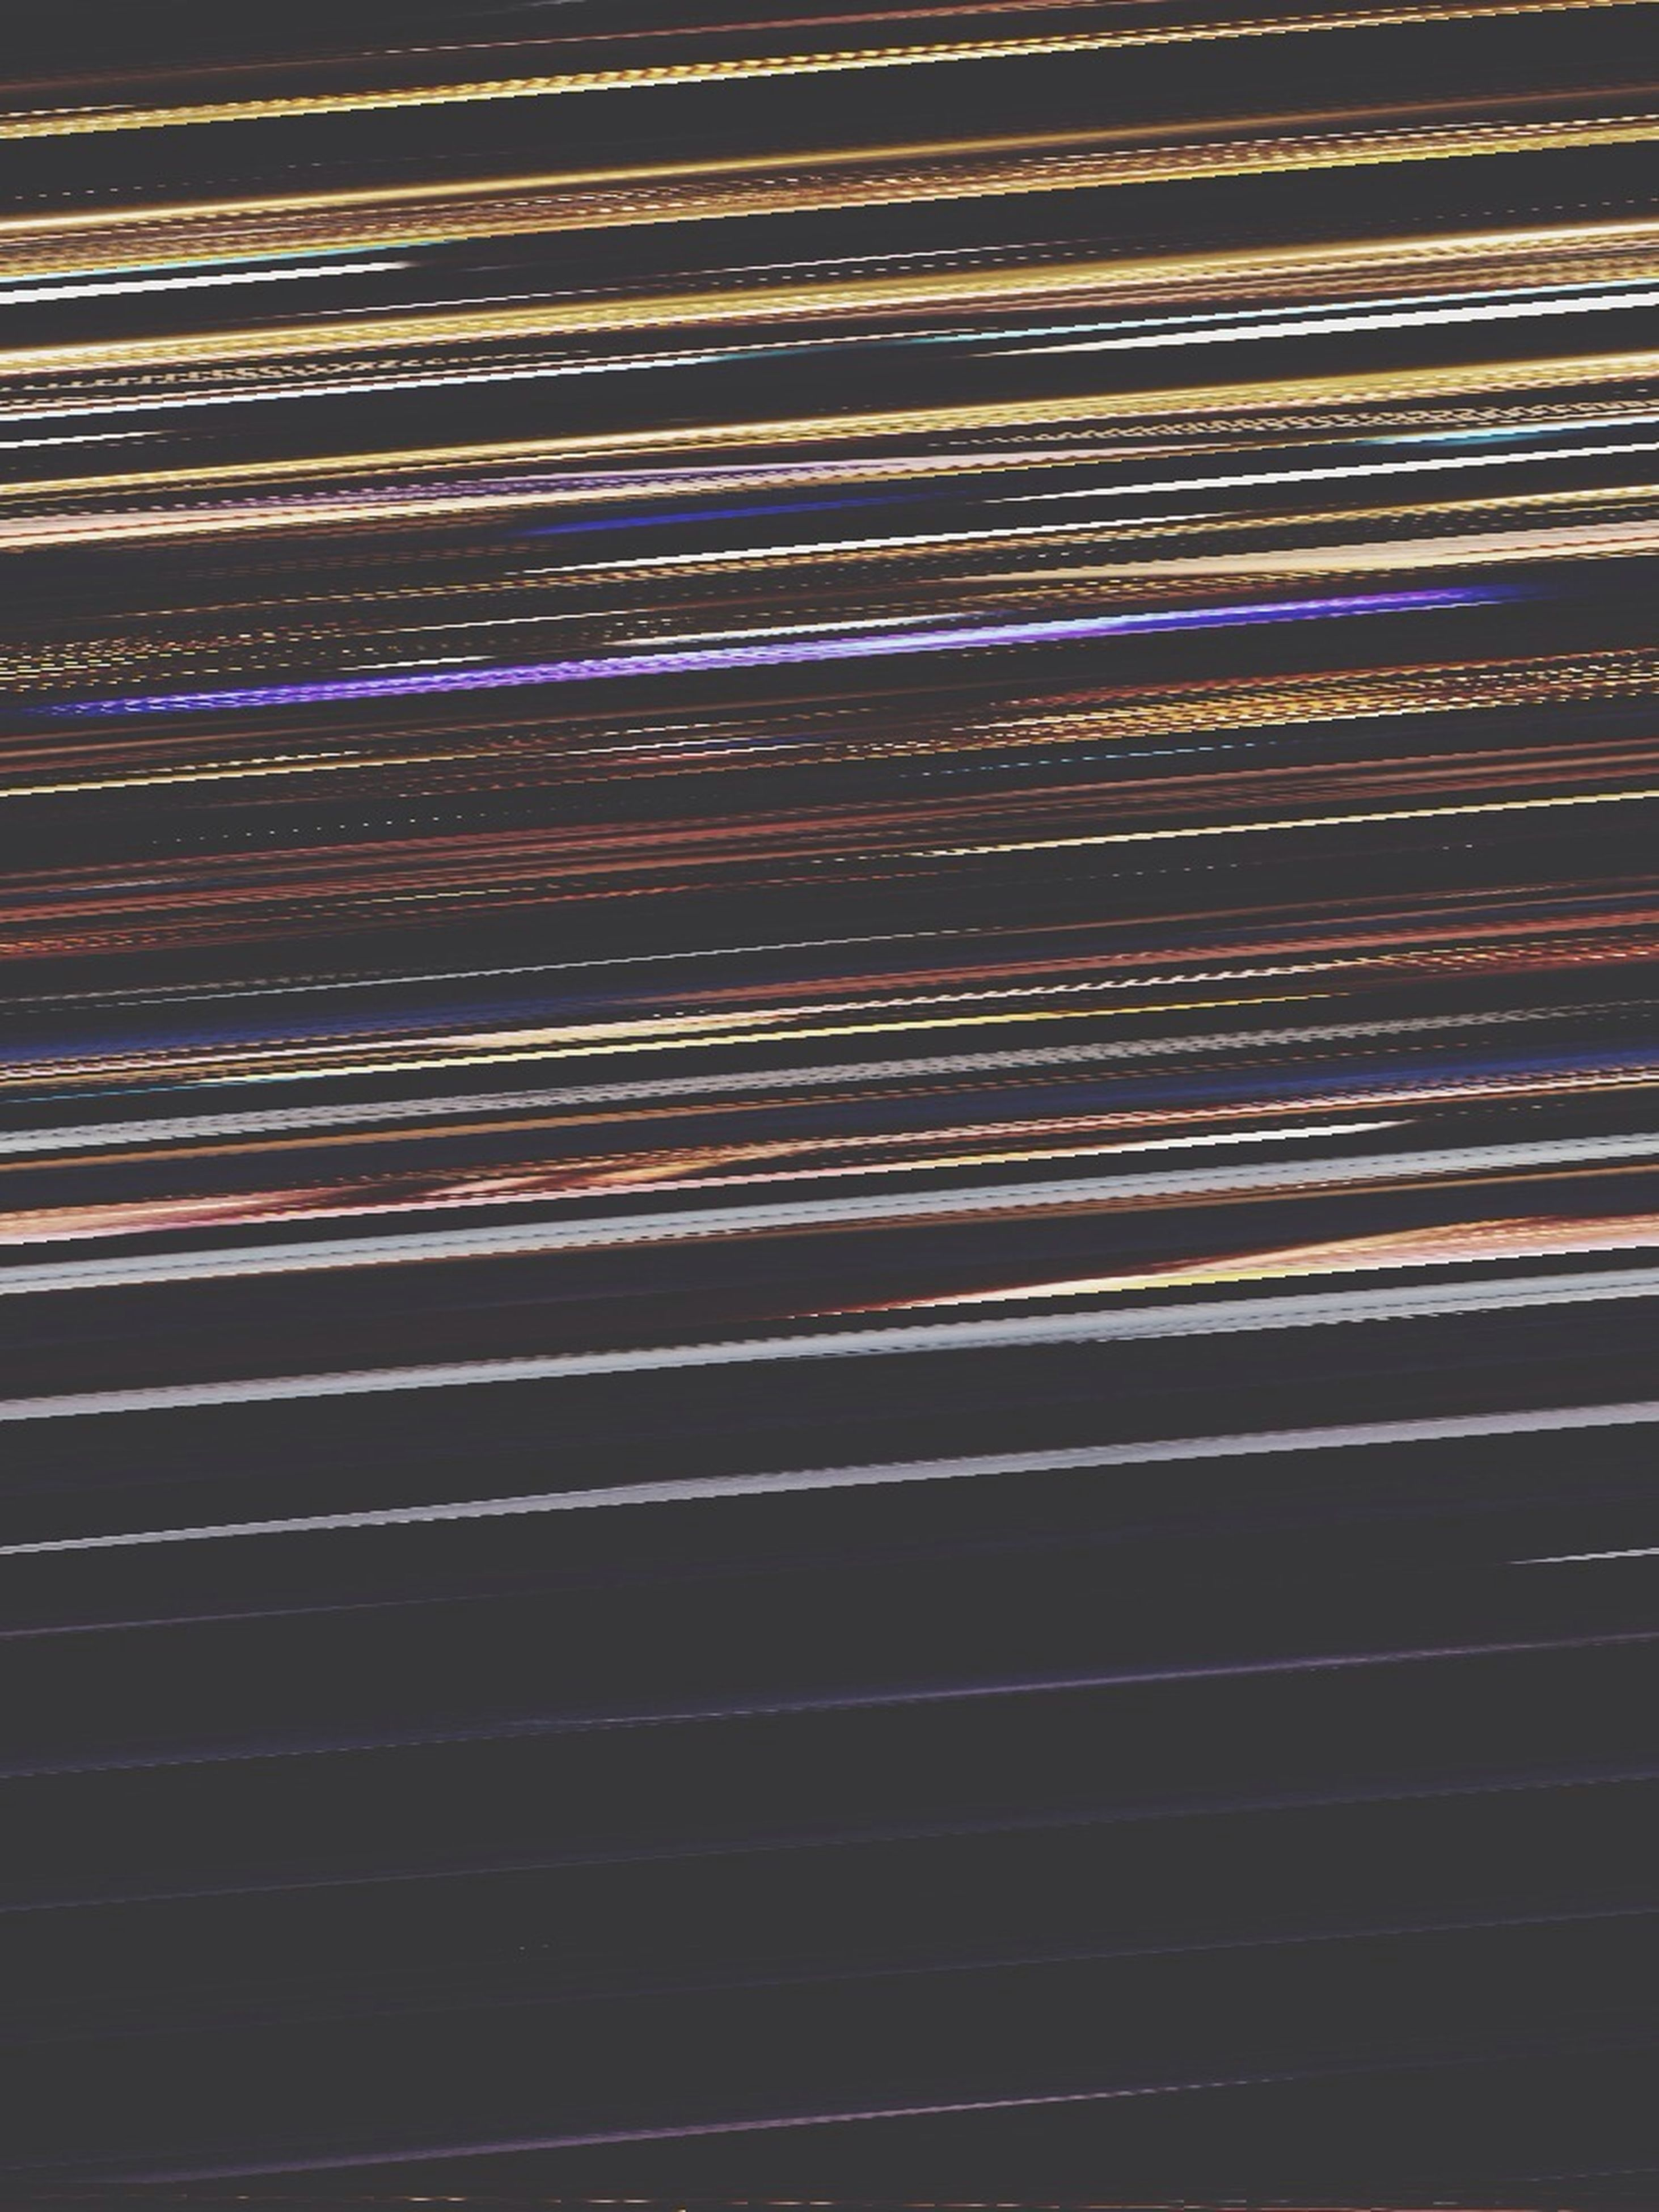 night, illuminated, pattern, long exposure, backgrounds, full frame, abstract, light trail, motion, multi colored, blurred motion, glowing, no people, speed, design, outdoors, light - natural phenomenon, textured, close-up